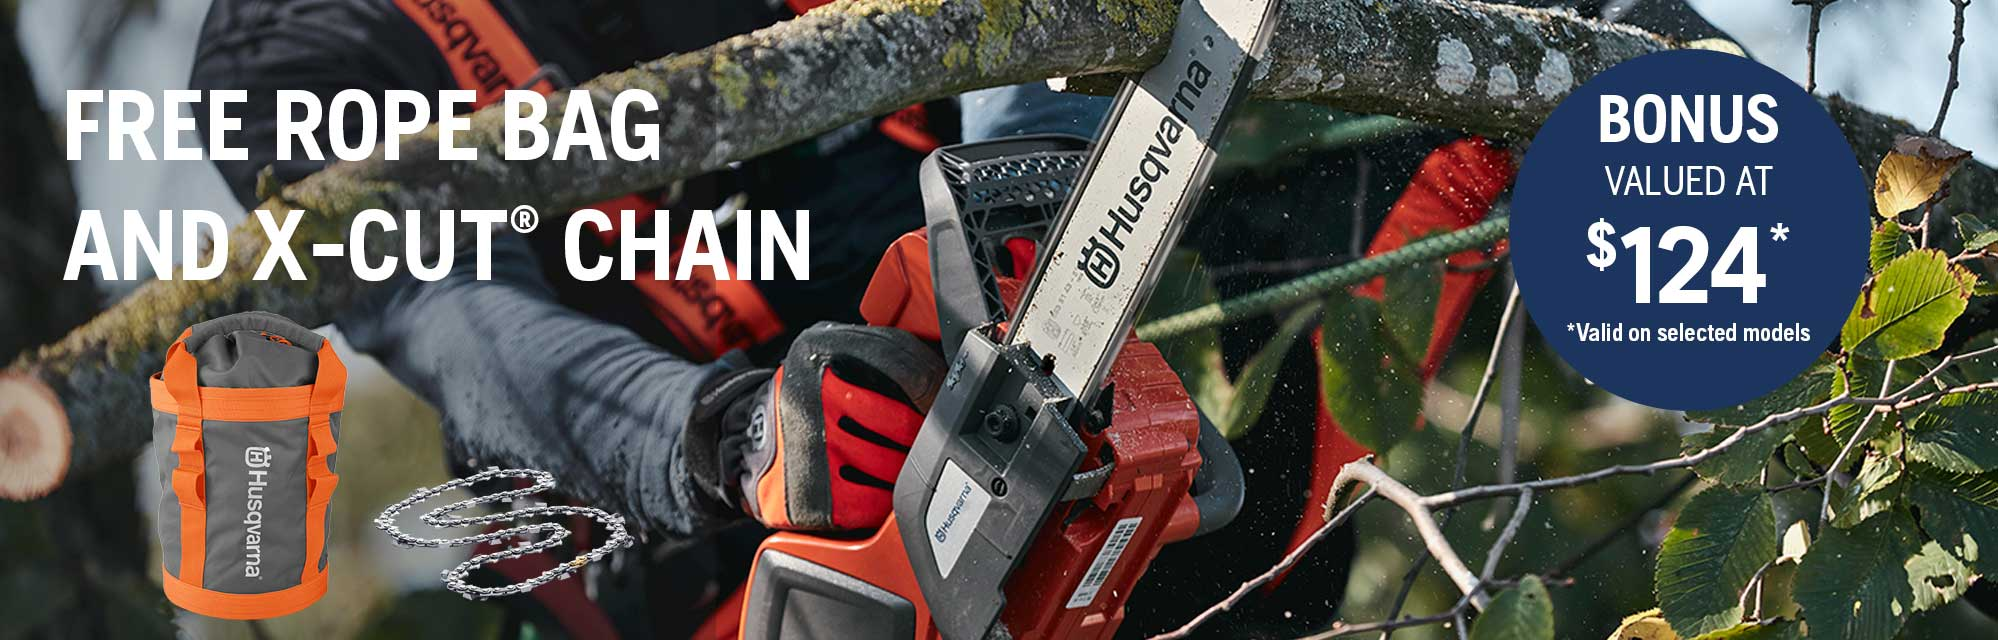 Chainsaws - FREE ROPE BAG AND CHAIN